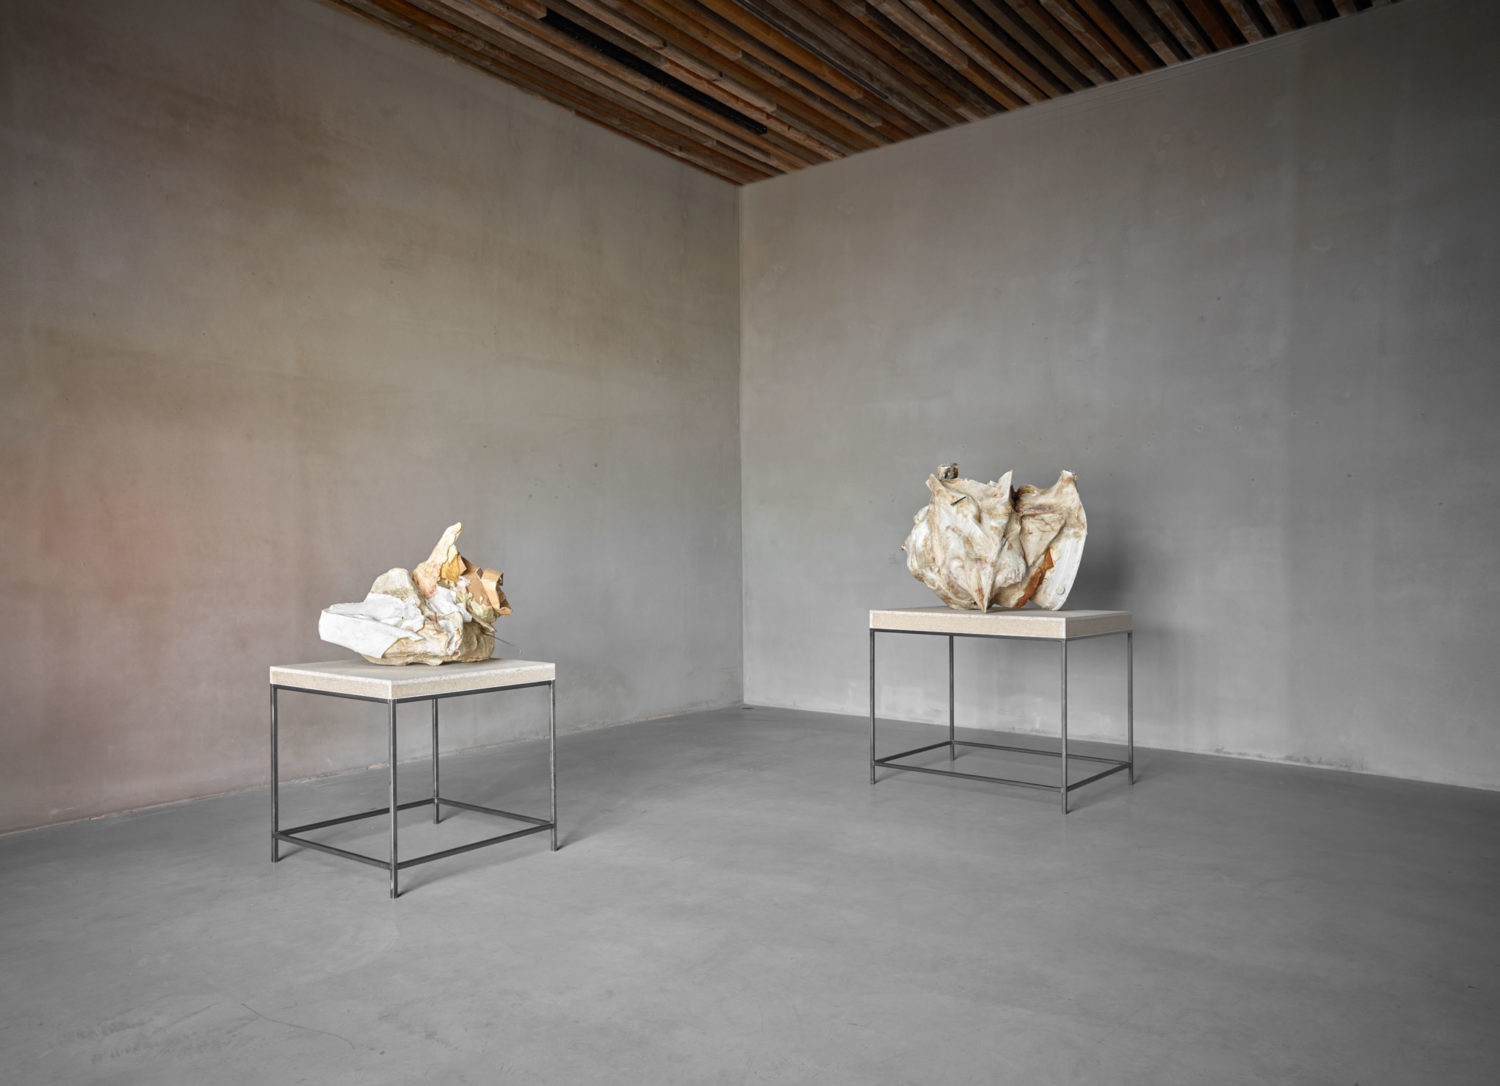 Installation view of Investigation of Materiality at Axel Vervoordt Gallery